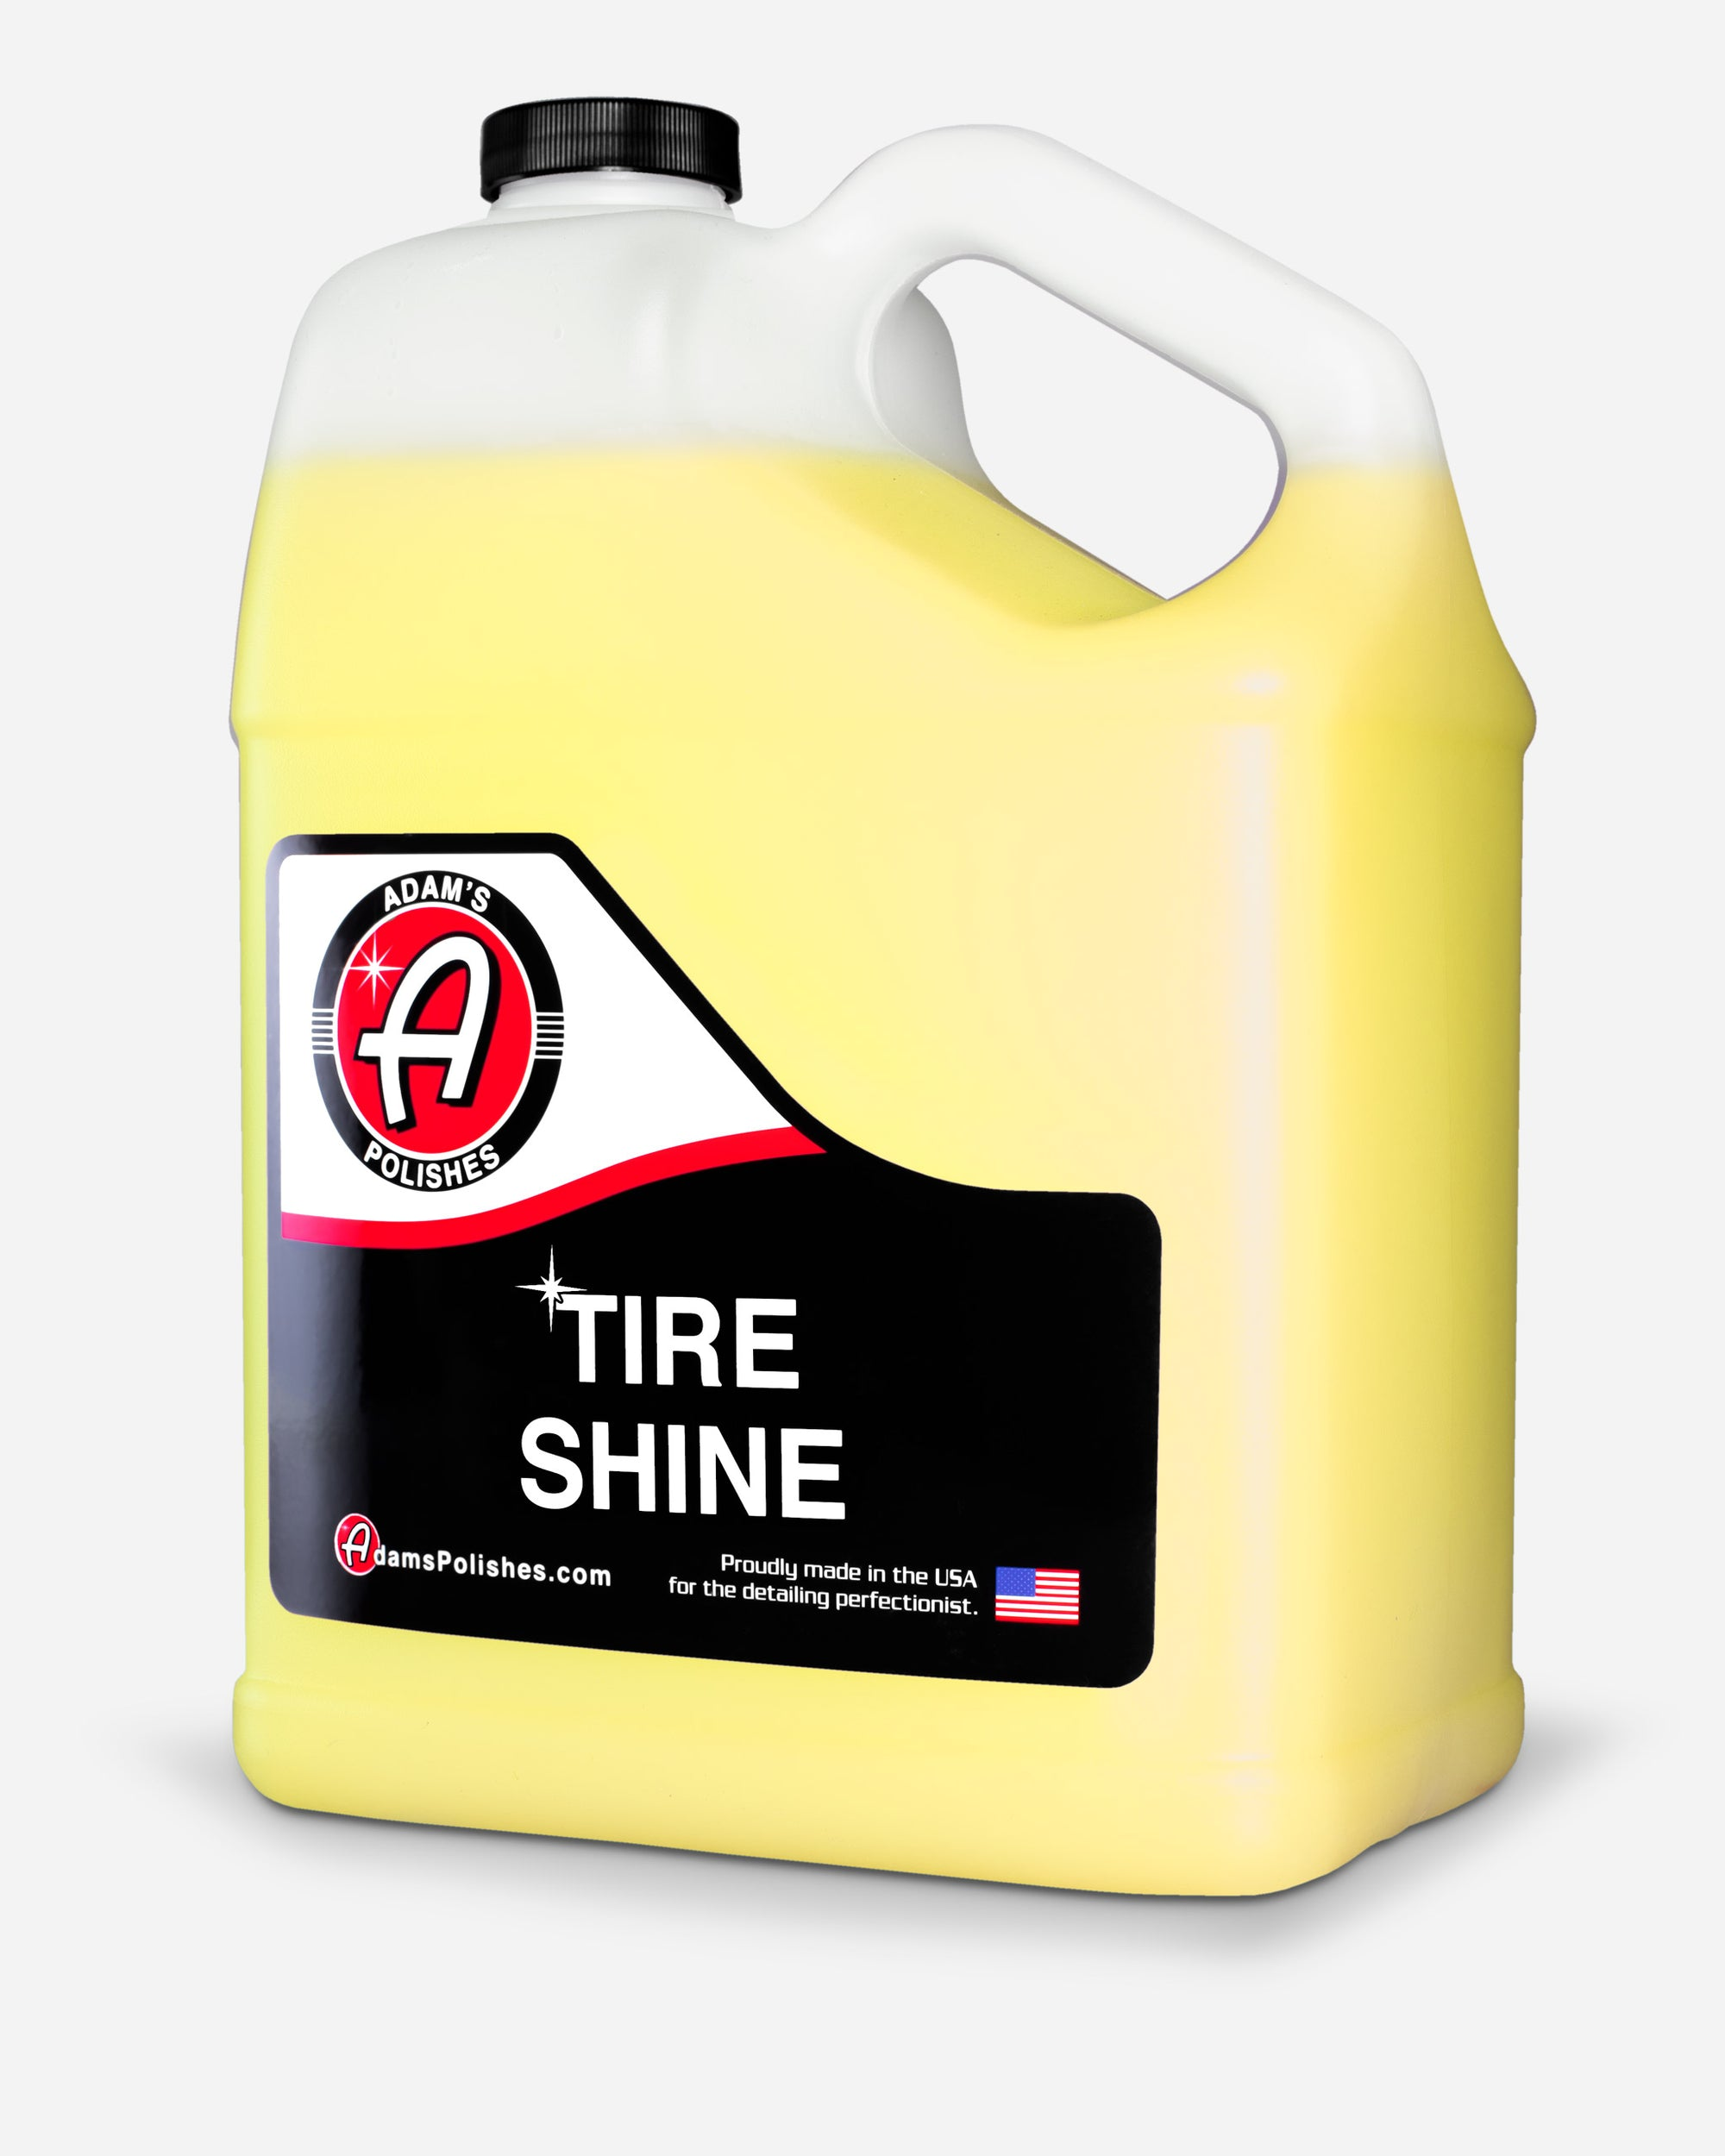 Adam's Tire Shine Gallon (OLD)